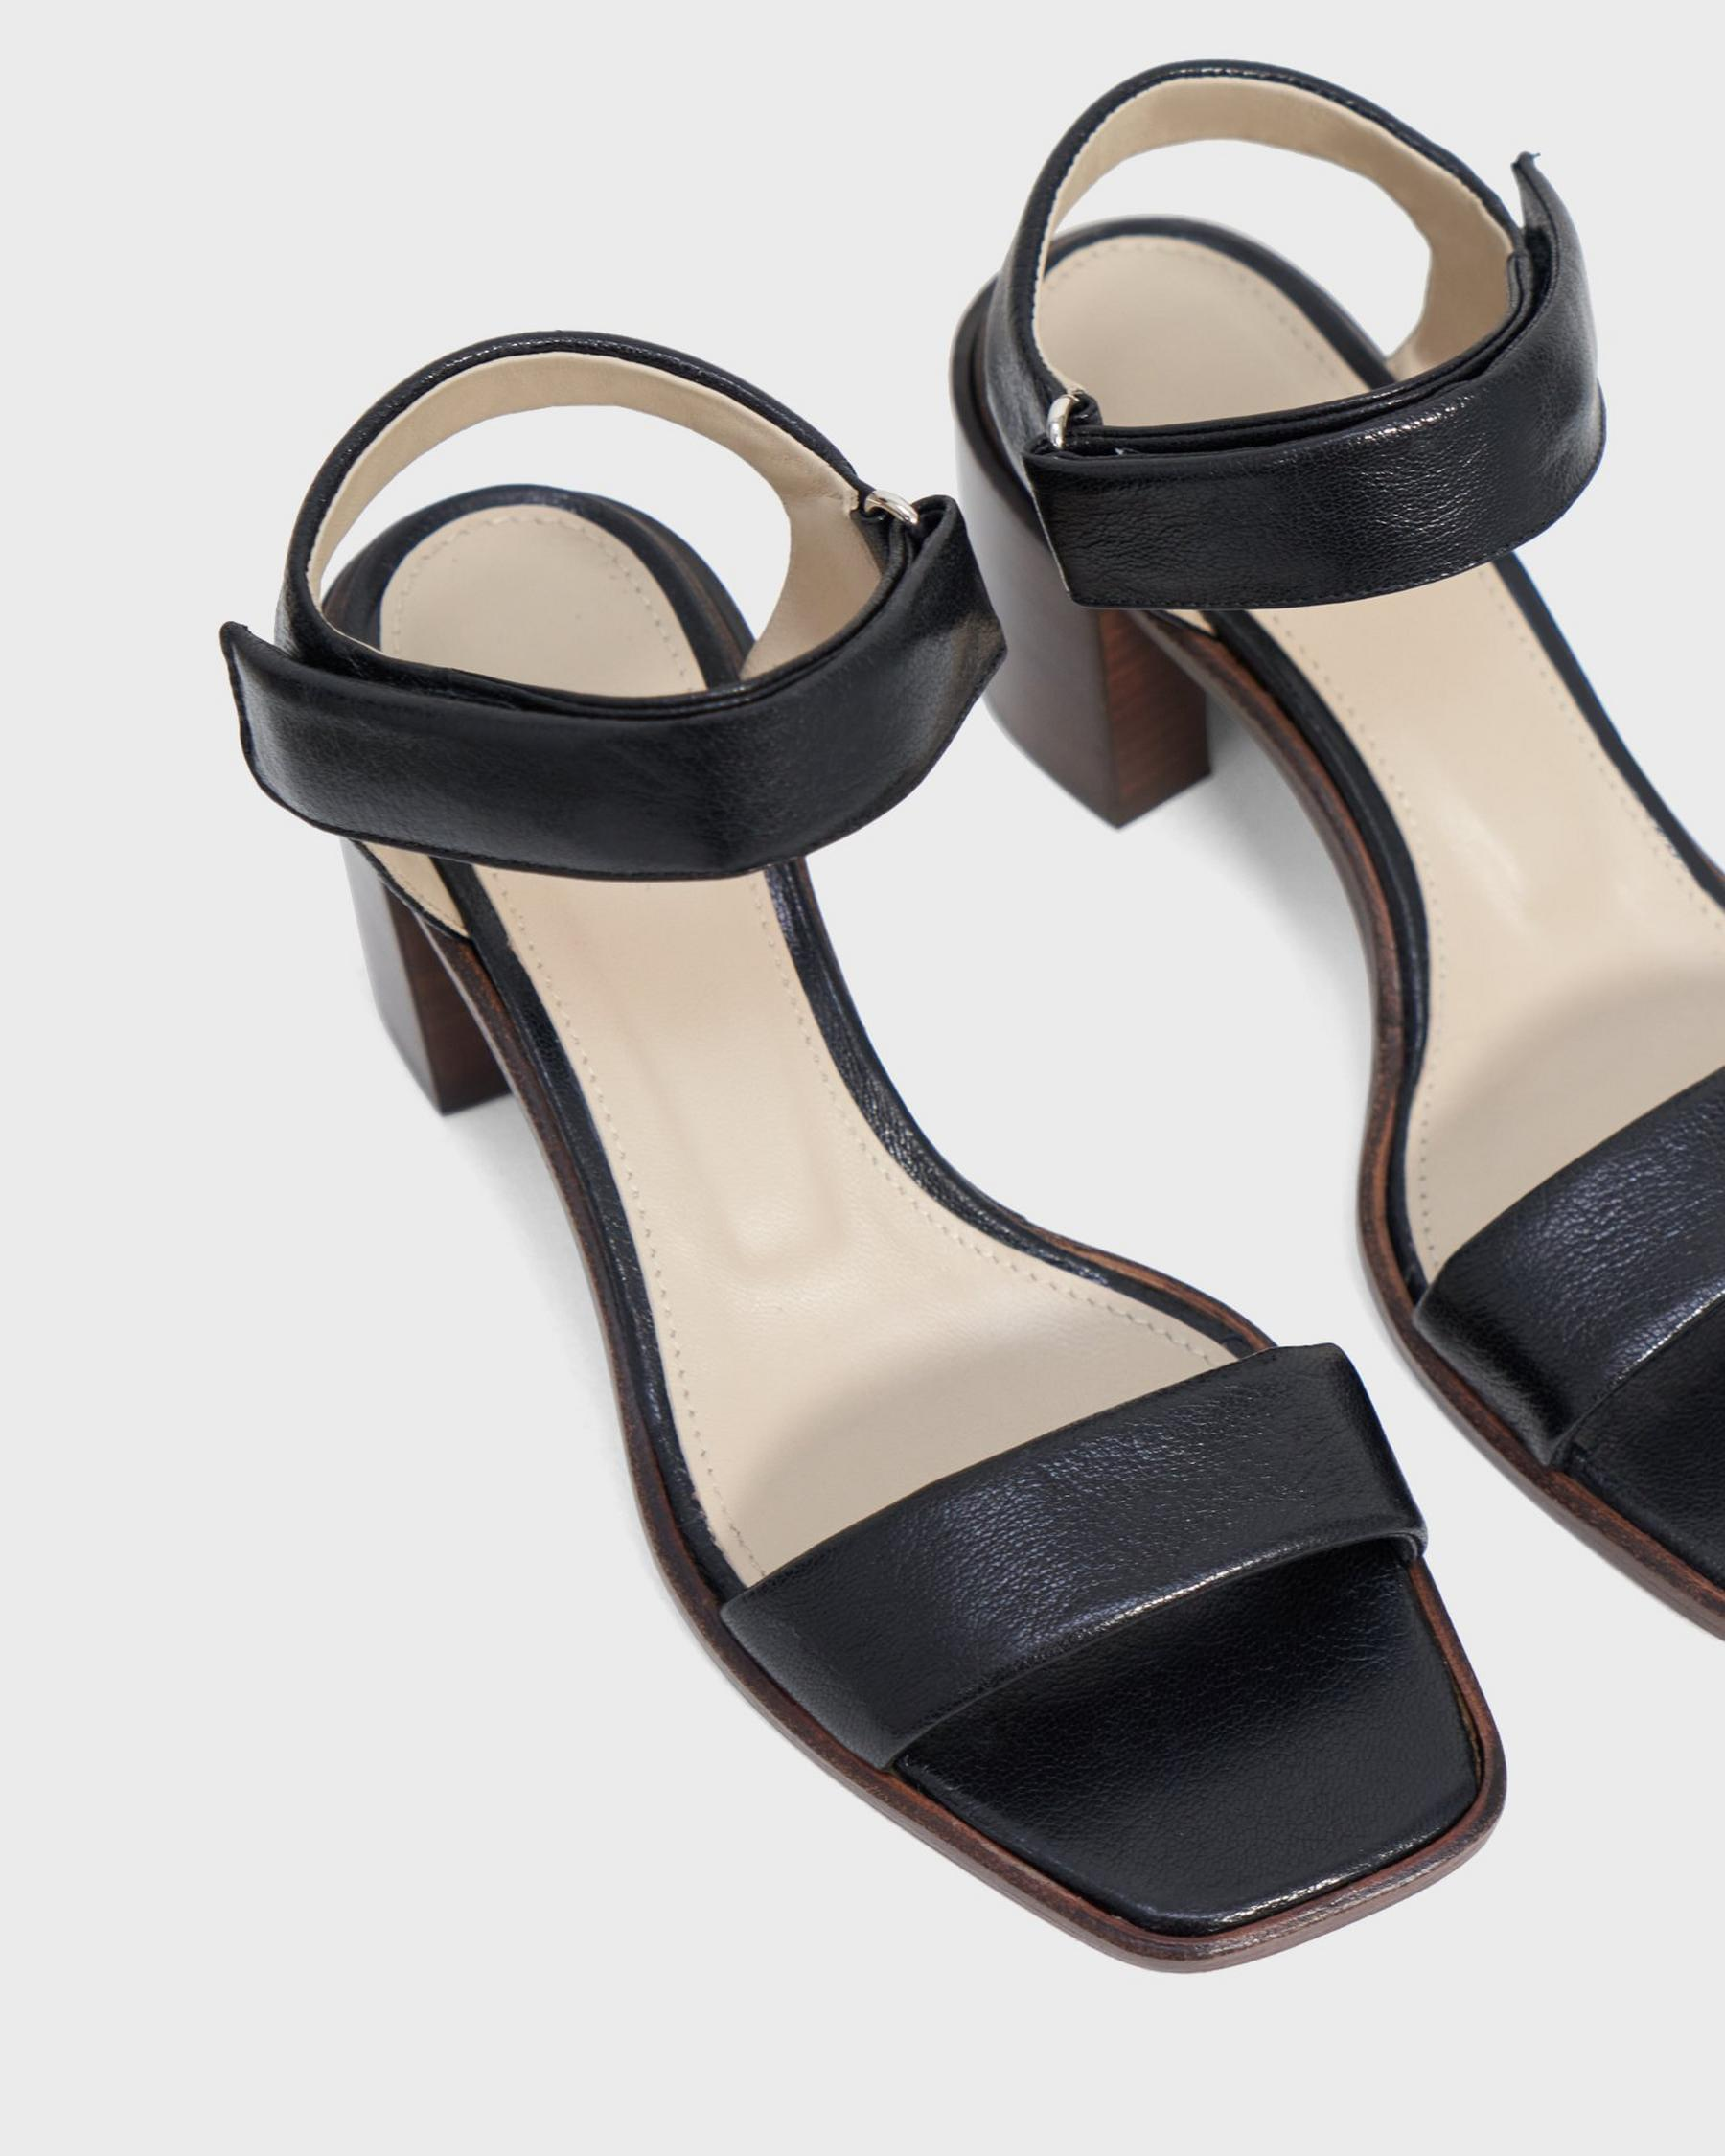 Mid-Ankle Strap Sandal in Leather 3